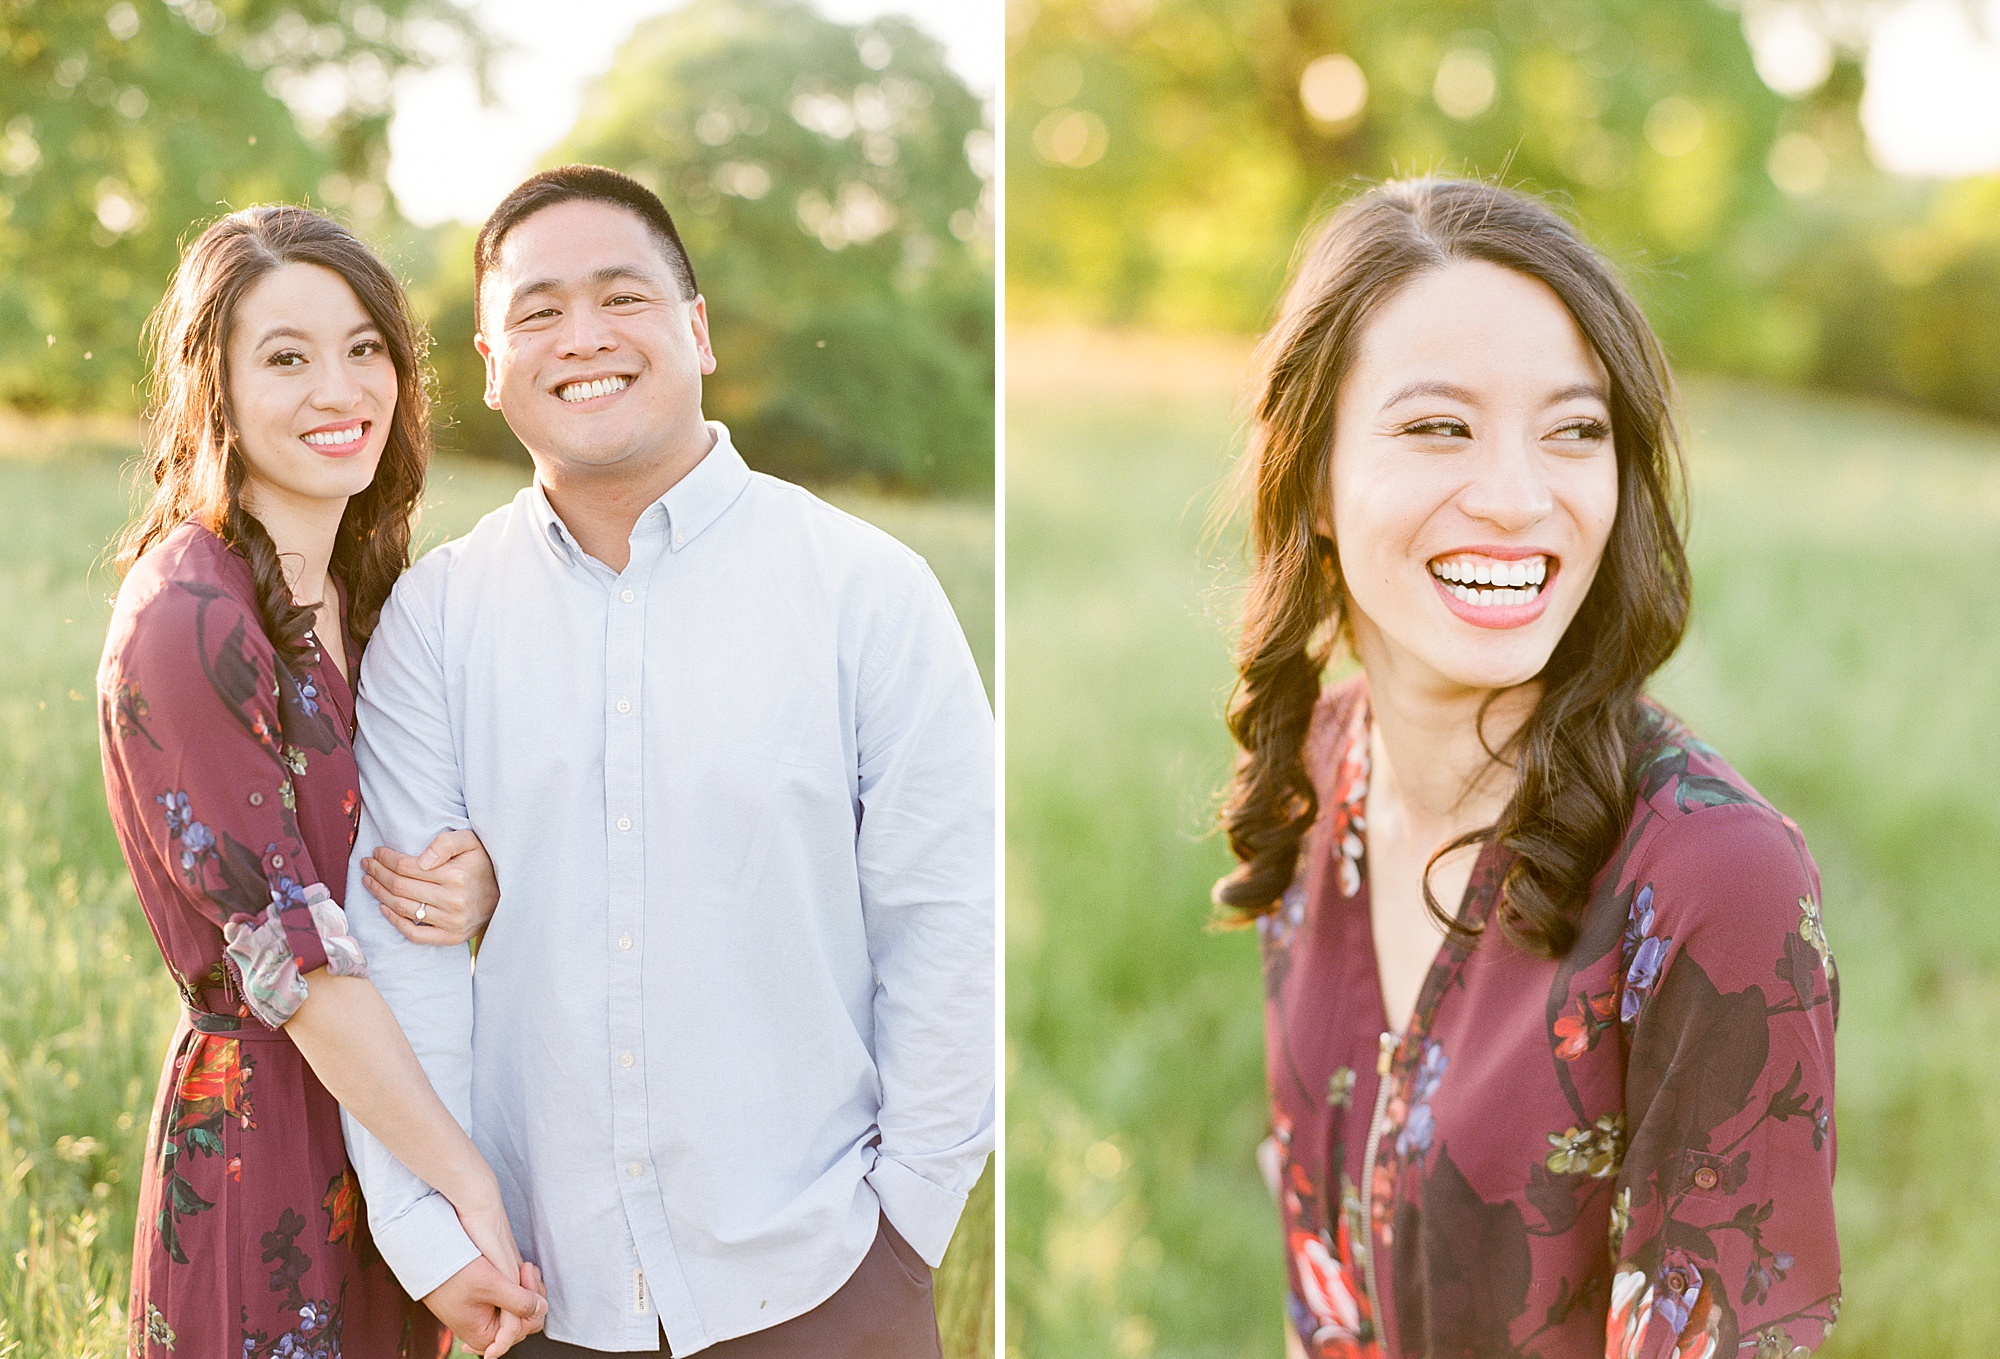 El Dorado Hills Engagement Session - Wendy and Danny - Ashley Baumgartner - Sacramento Wedding Photographer and Sacramento Wedding Photography - Bay Area Wedding Photographer_0014.jpg